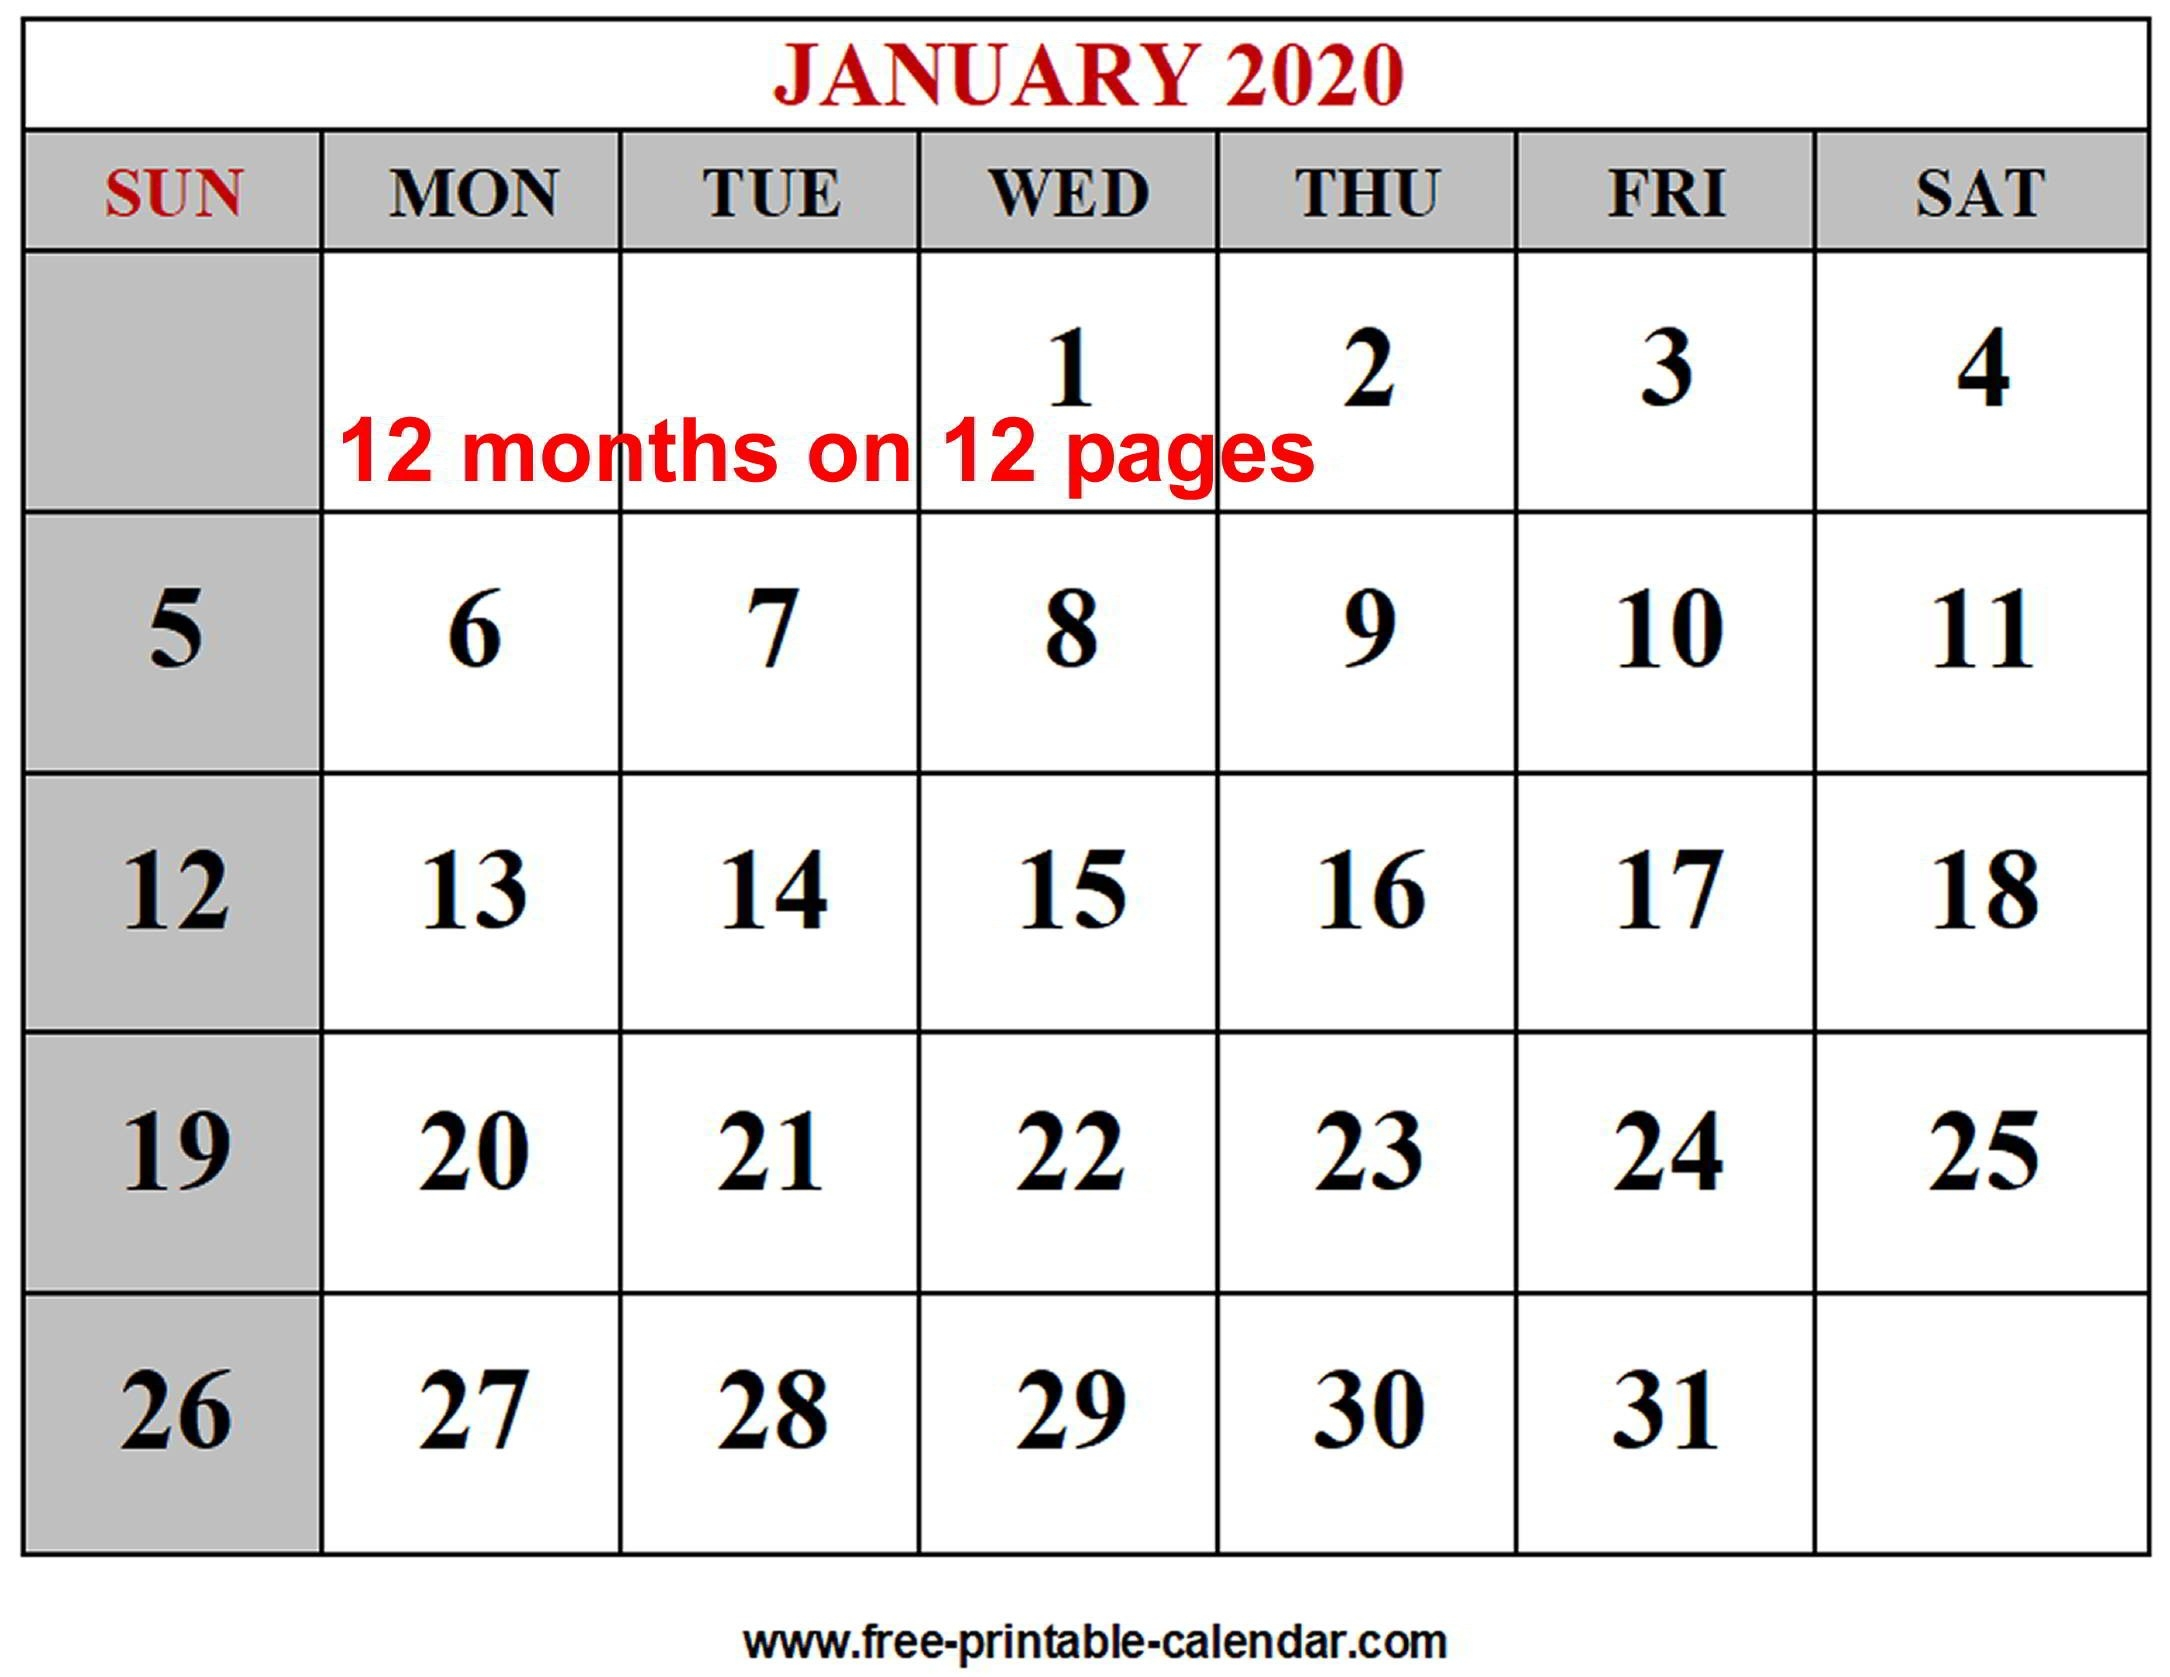 Year 2020 Calendar Templates - Free-Printable-Calendar-2 Page Monthly Calendar Template 2020